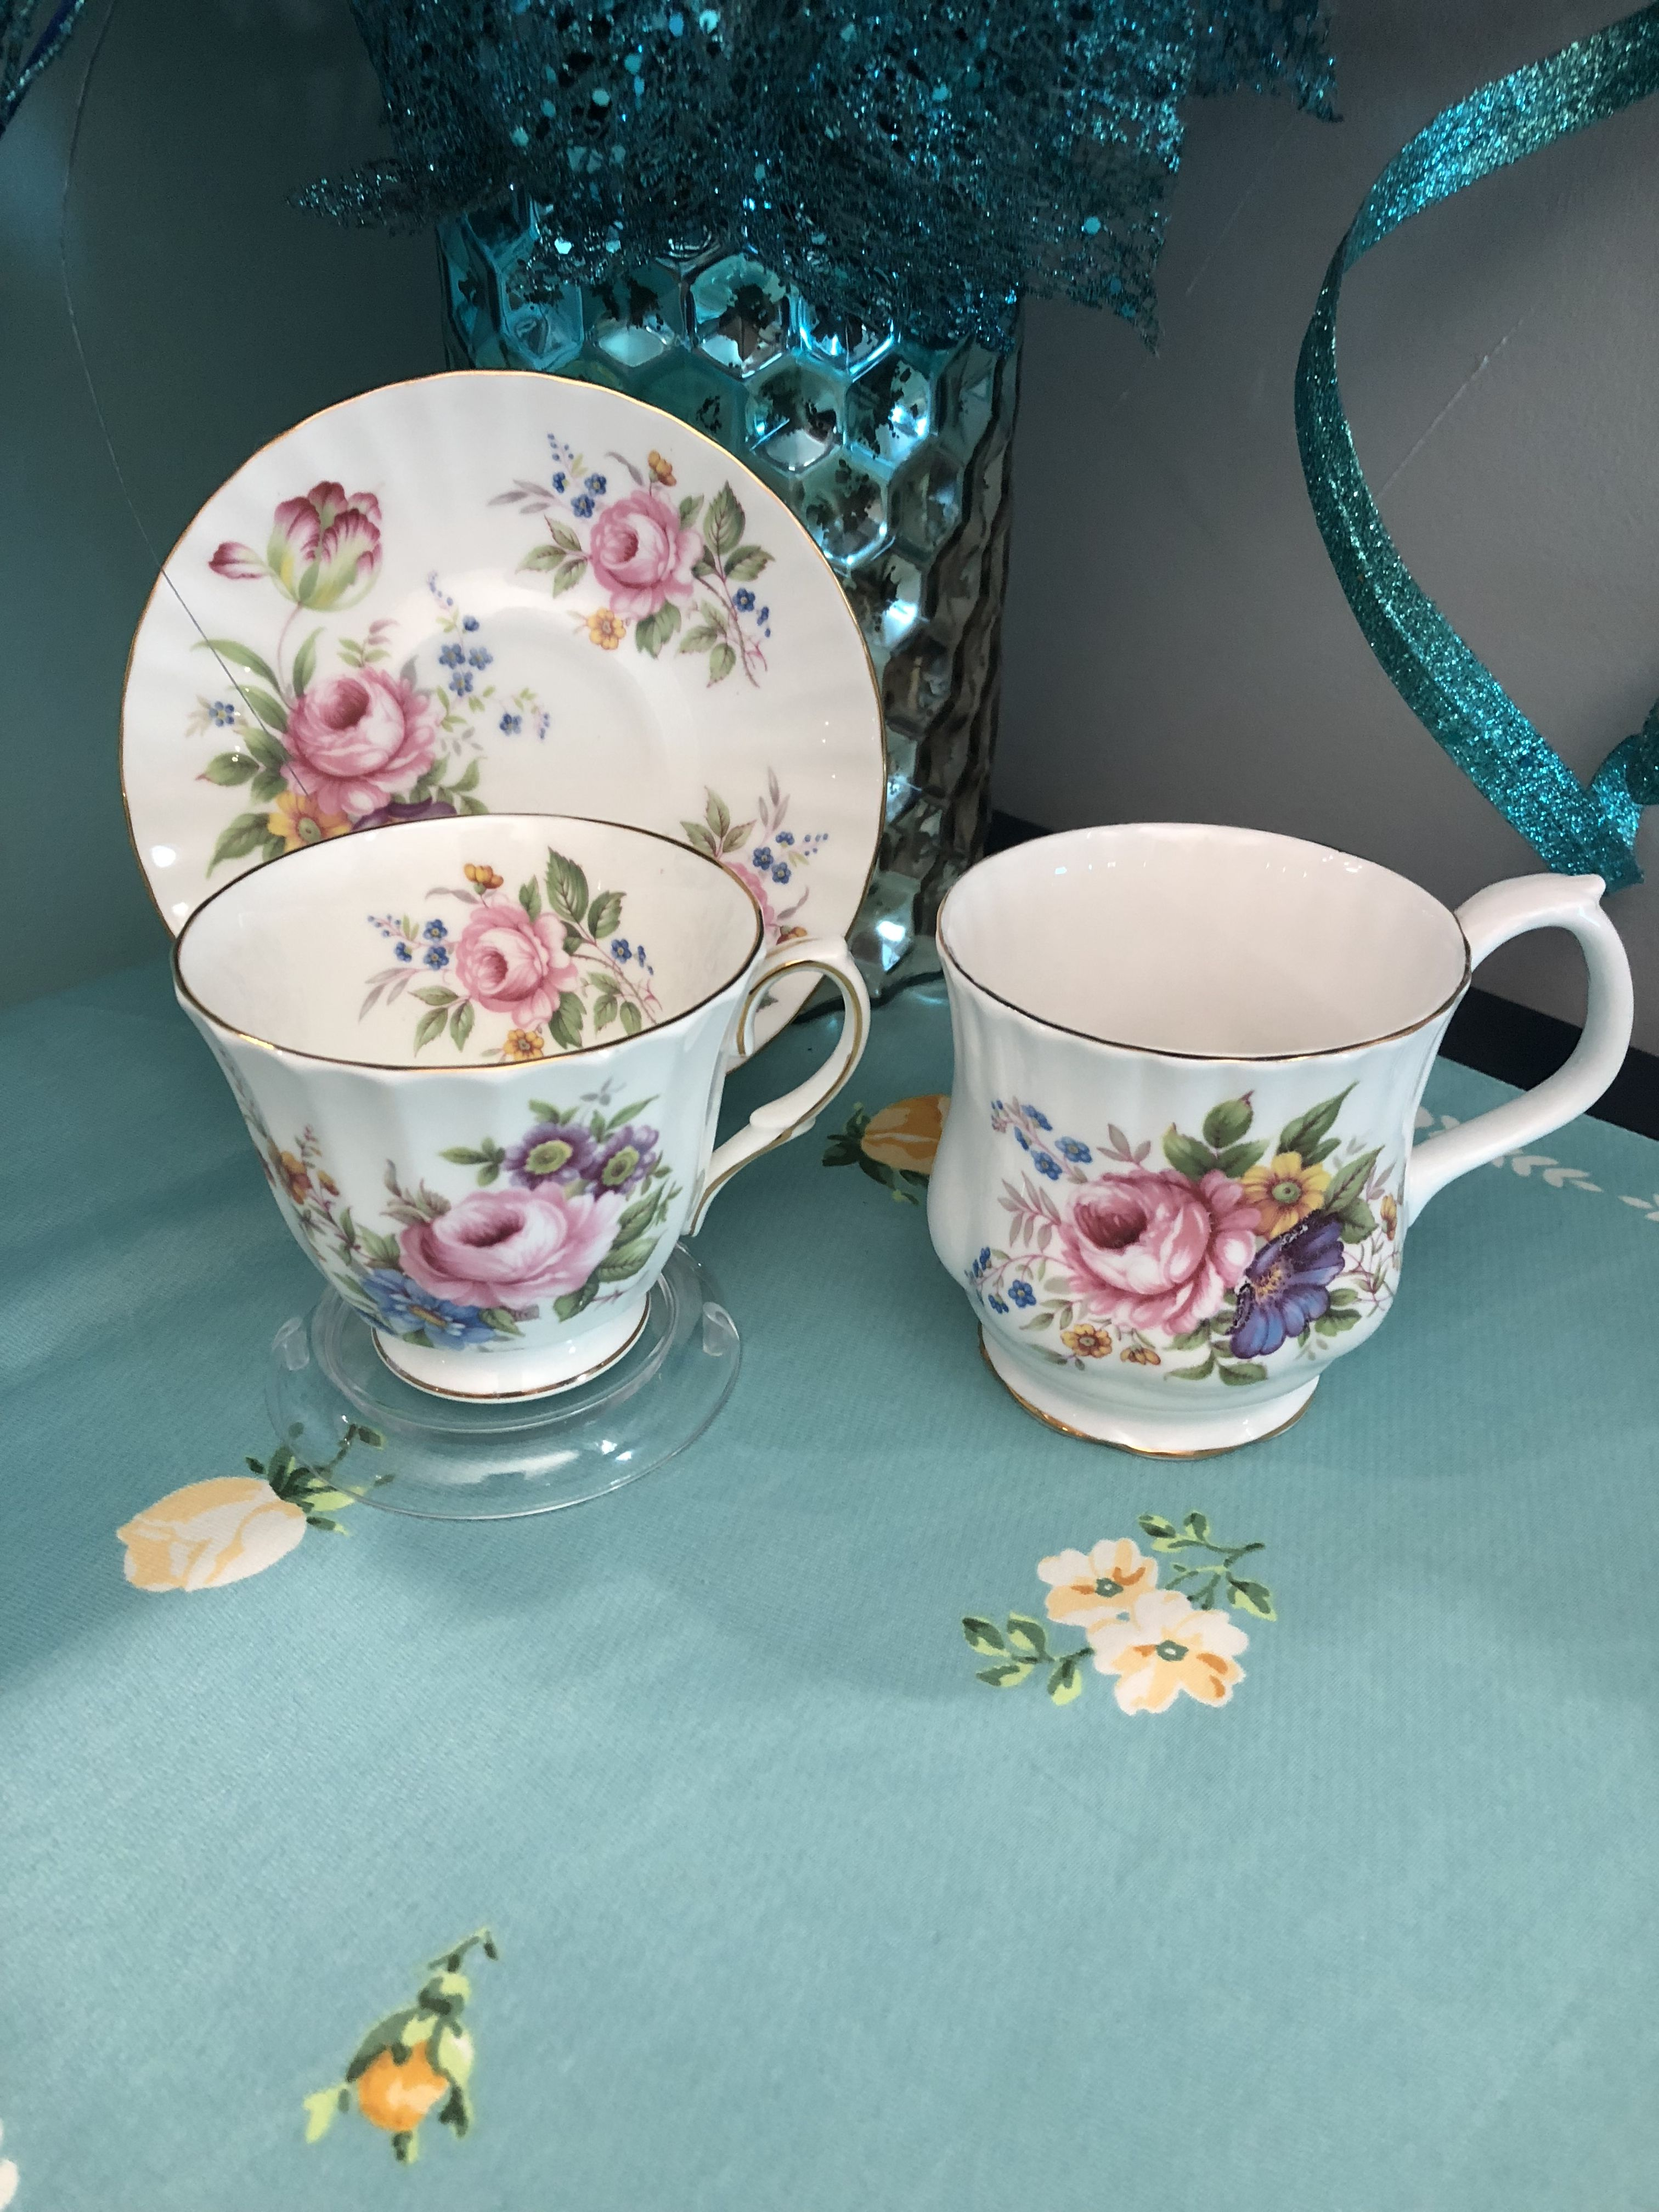 Many Pattern Designers Sold Their Patterns To Several Manufacturers Of China The Teacup And Saucer Are Made By Duchess A With Images Tea Cups Antique Tea Cups Antique Tea